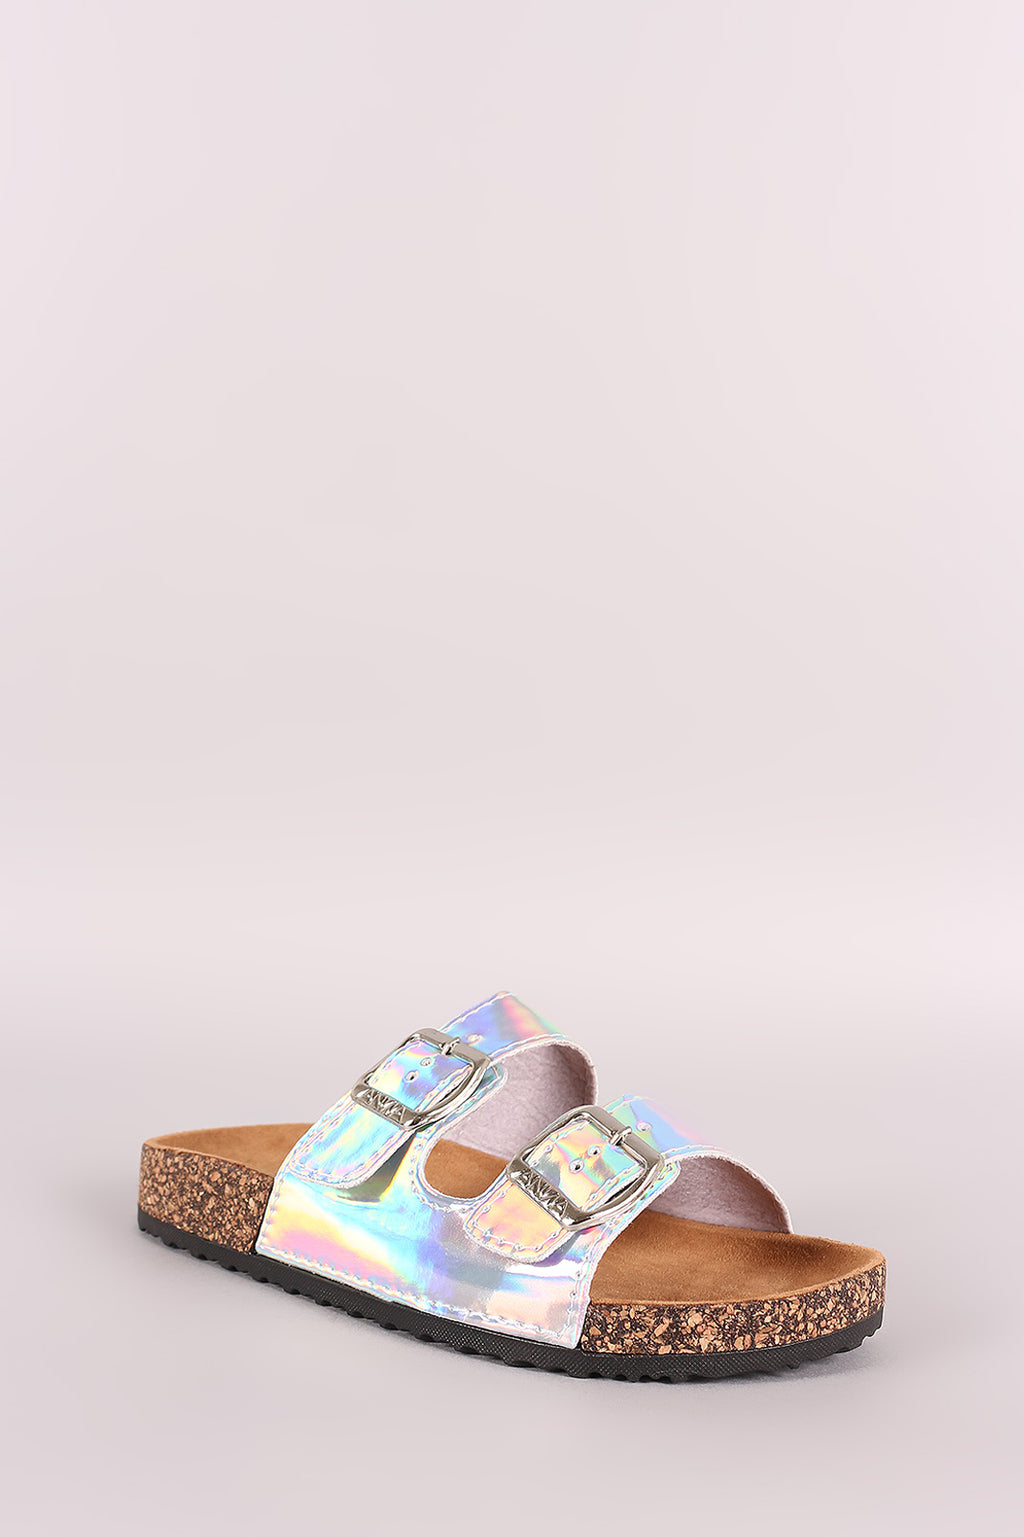 Katherine Open Toe Buckled Cork Footbed Slide Sandal - Iridescent